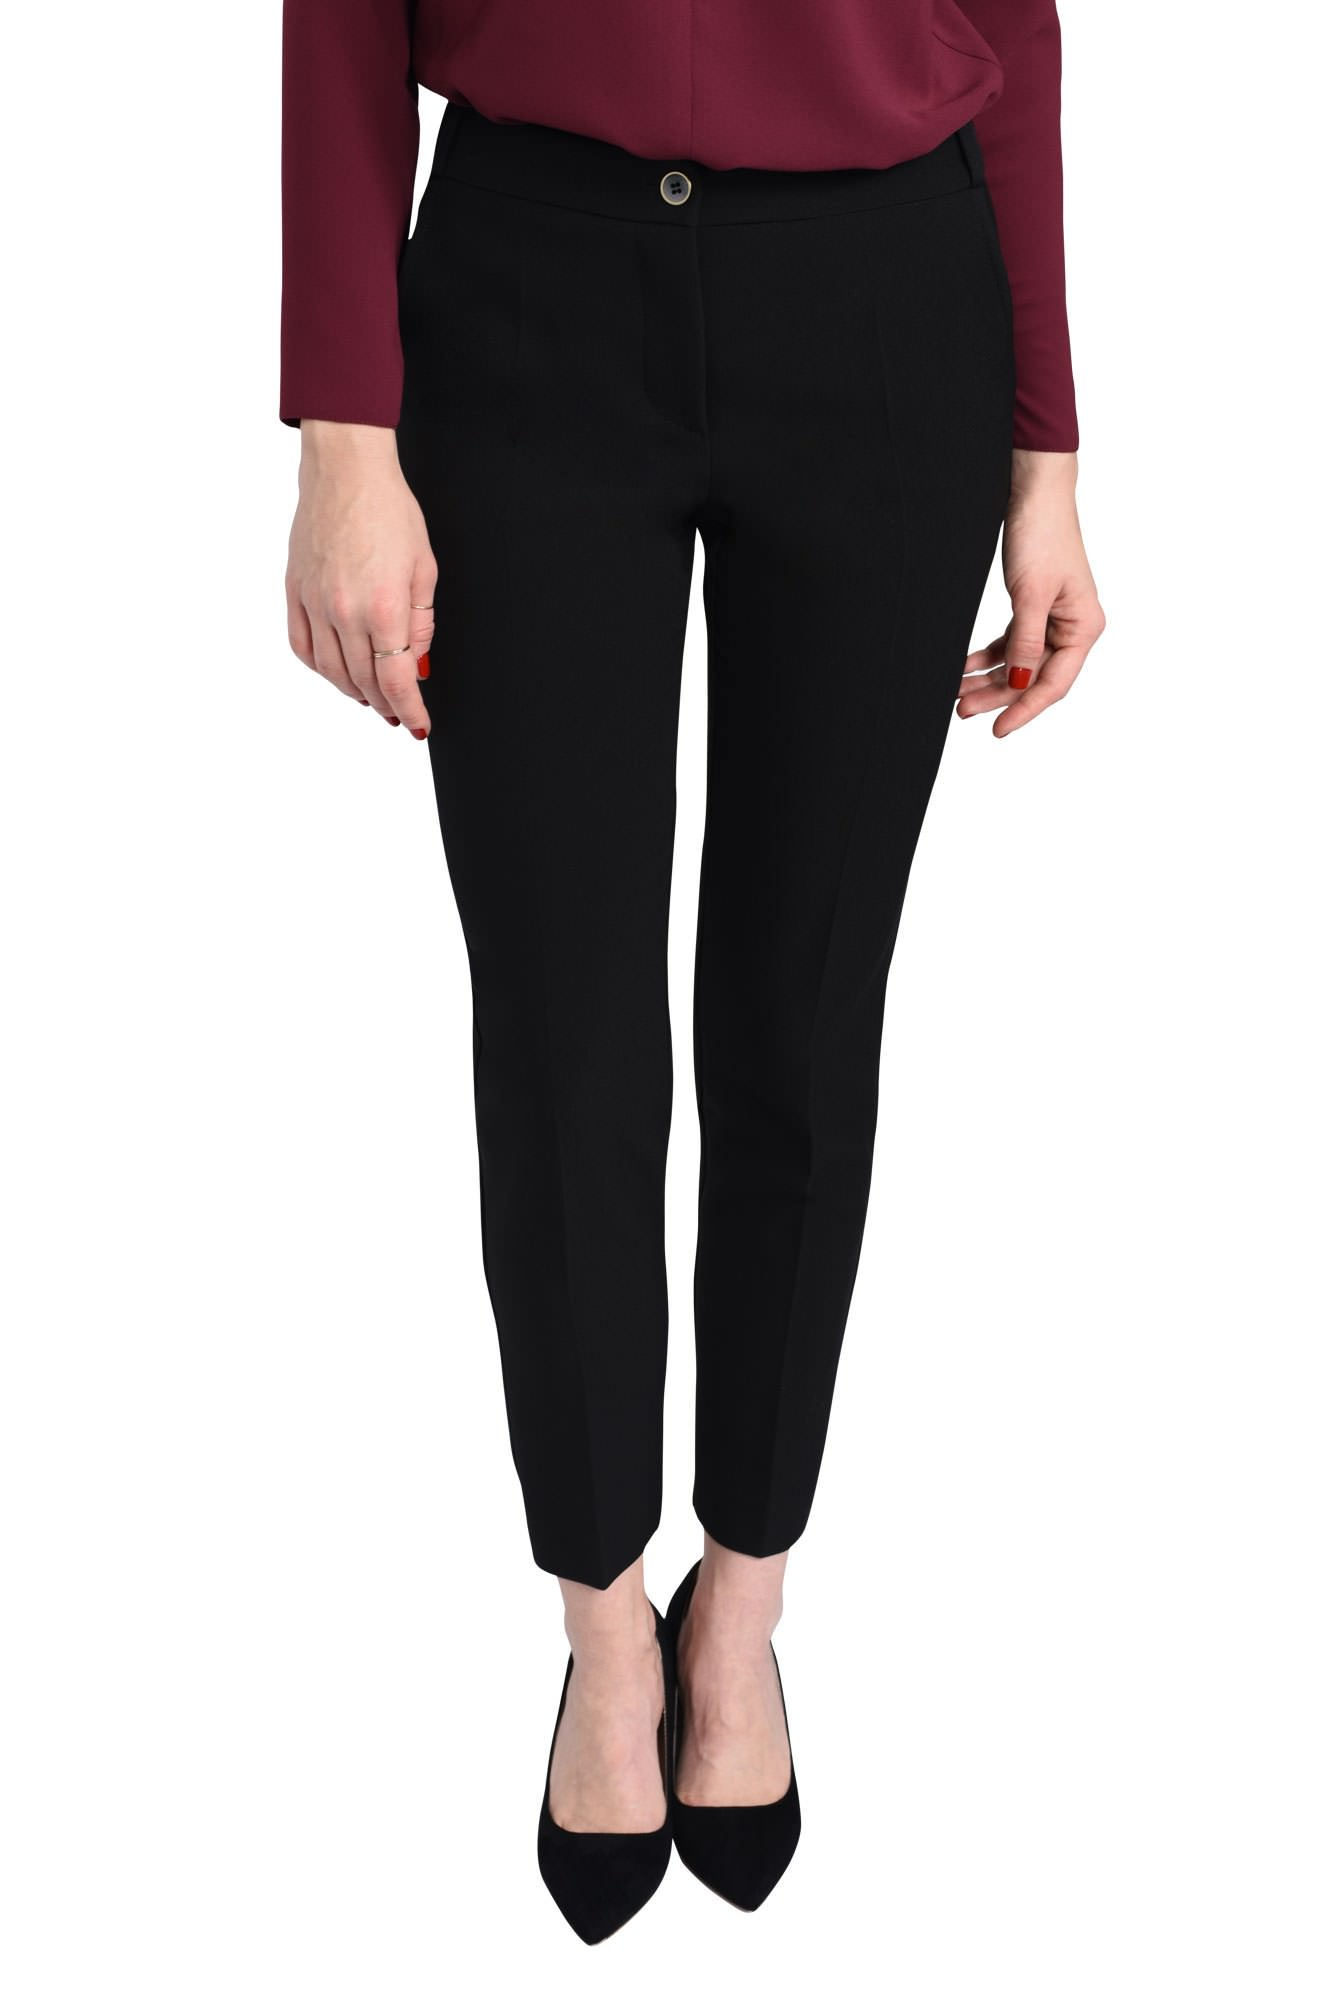 2 - PANTALON OFFICE PT 123-NEGRU